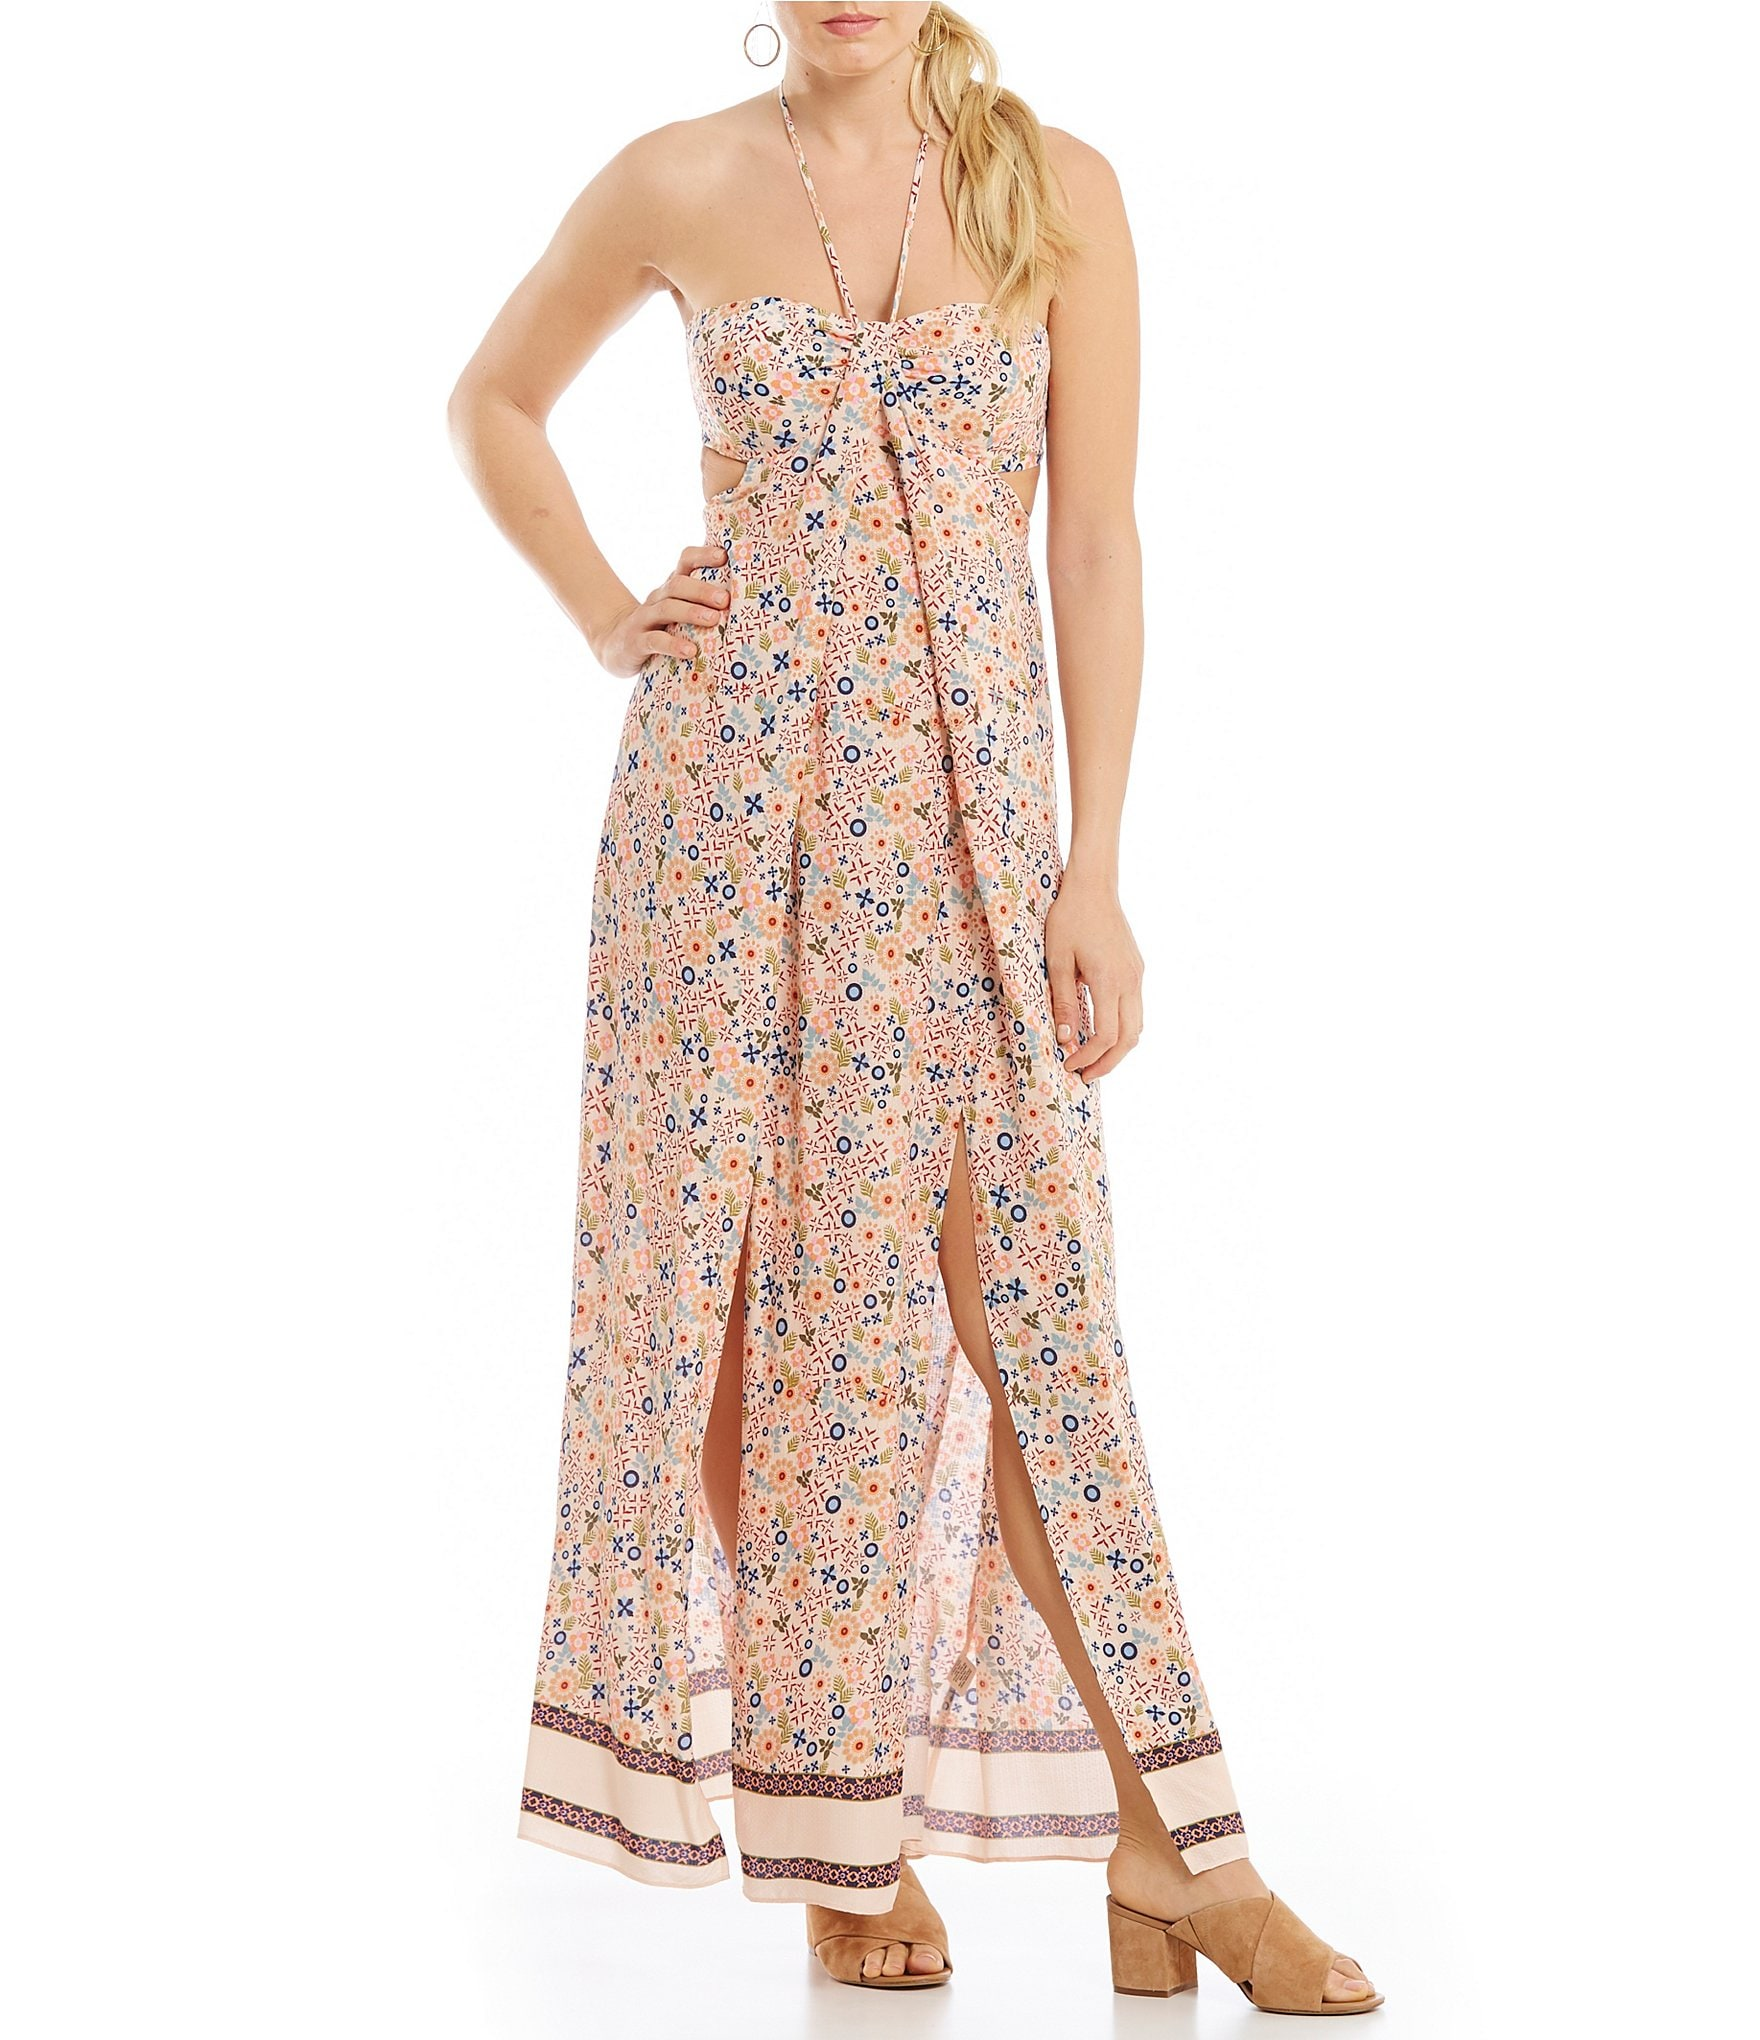 Gypsy 05 isla top overlay maxi dress in turquoise